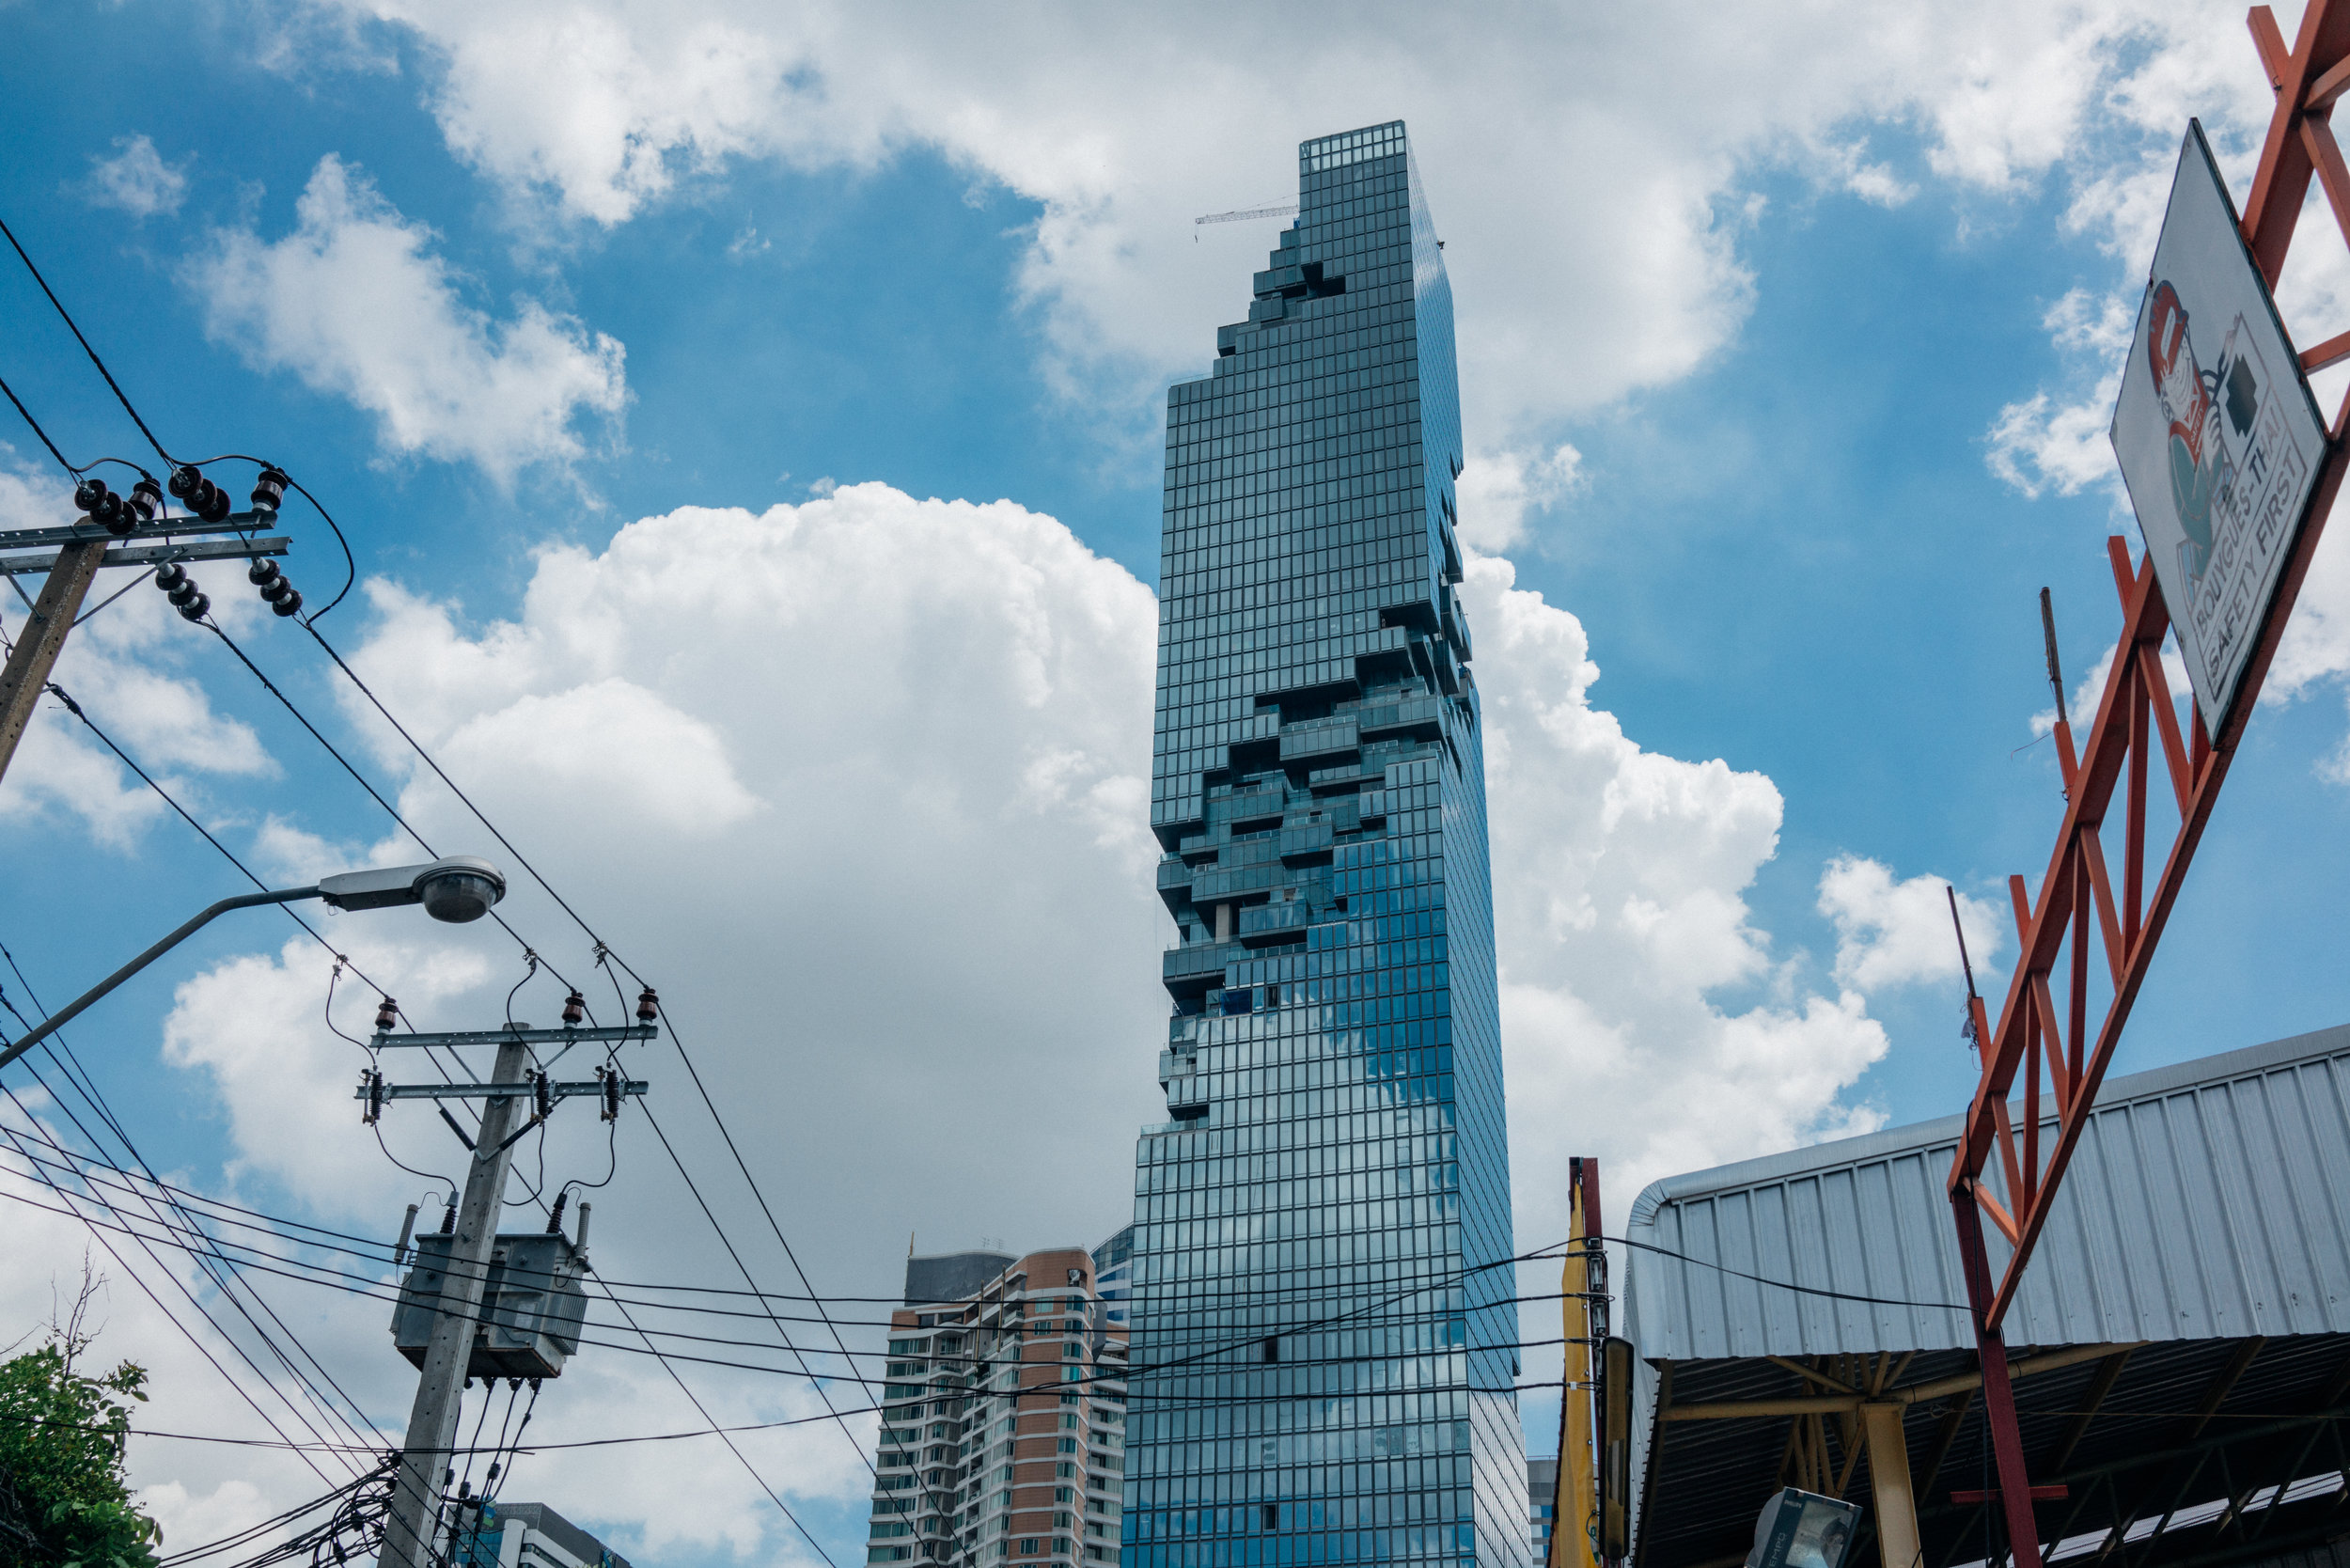 A new high-rise building under construction in Bangkok